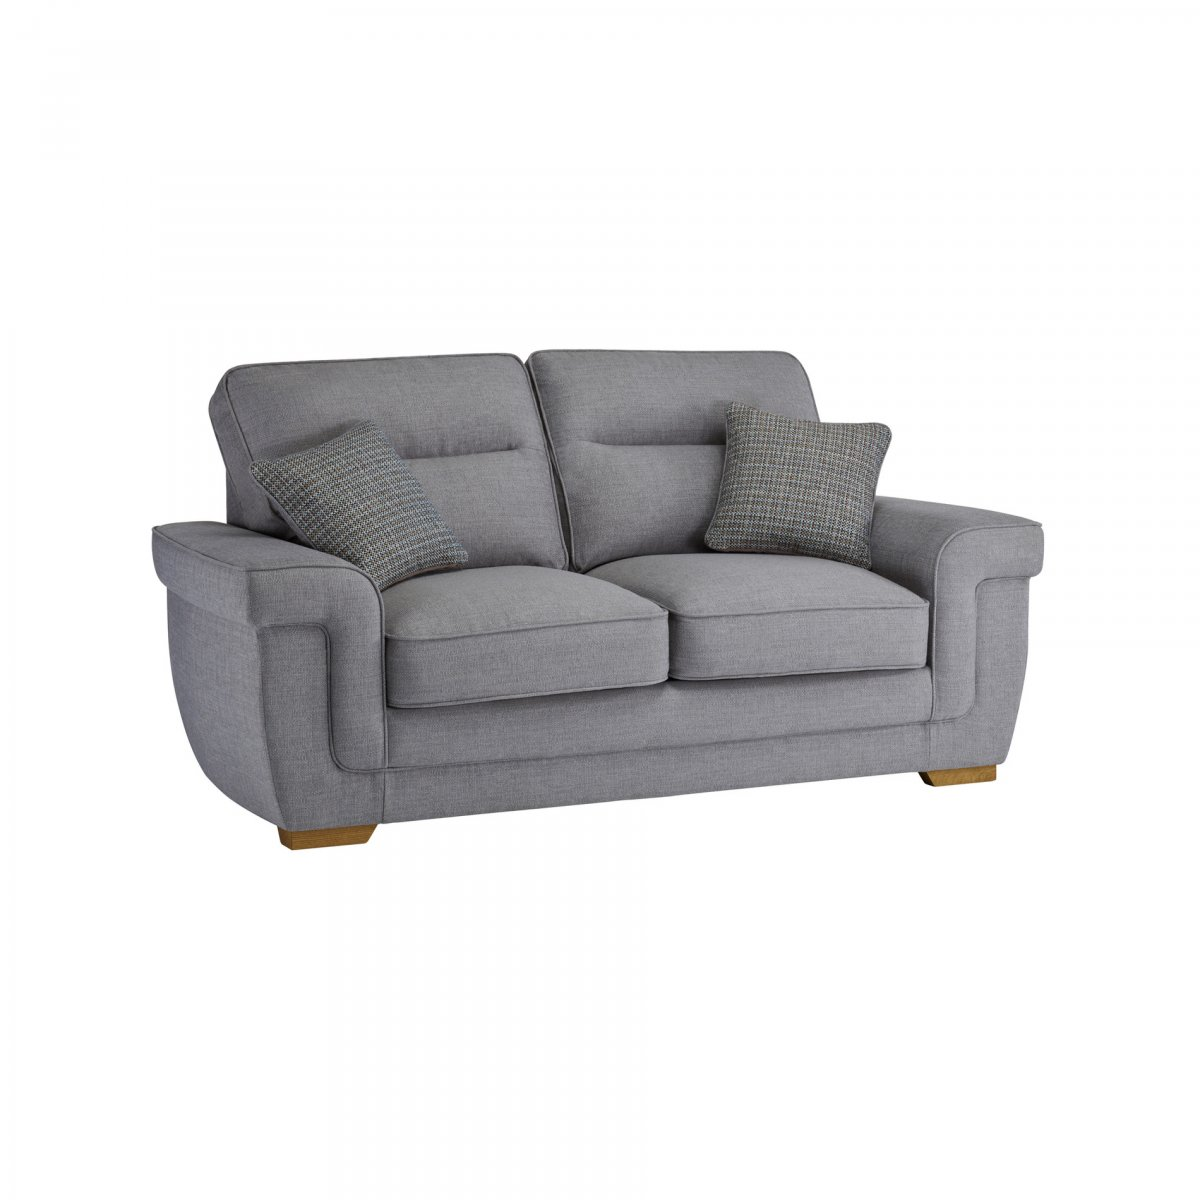 Kirby 2 seater sofa bed with deluxe mattress barley silver for Sofa bed 2 seater uk